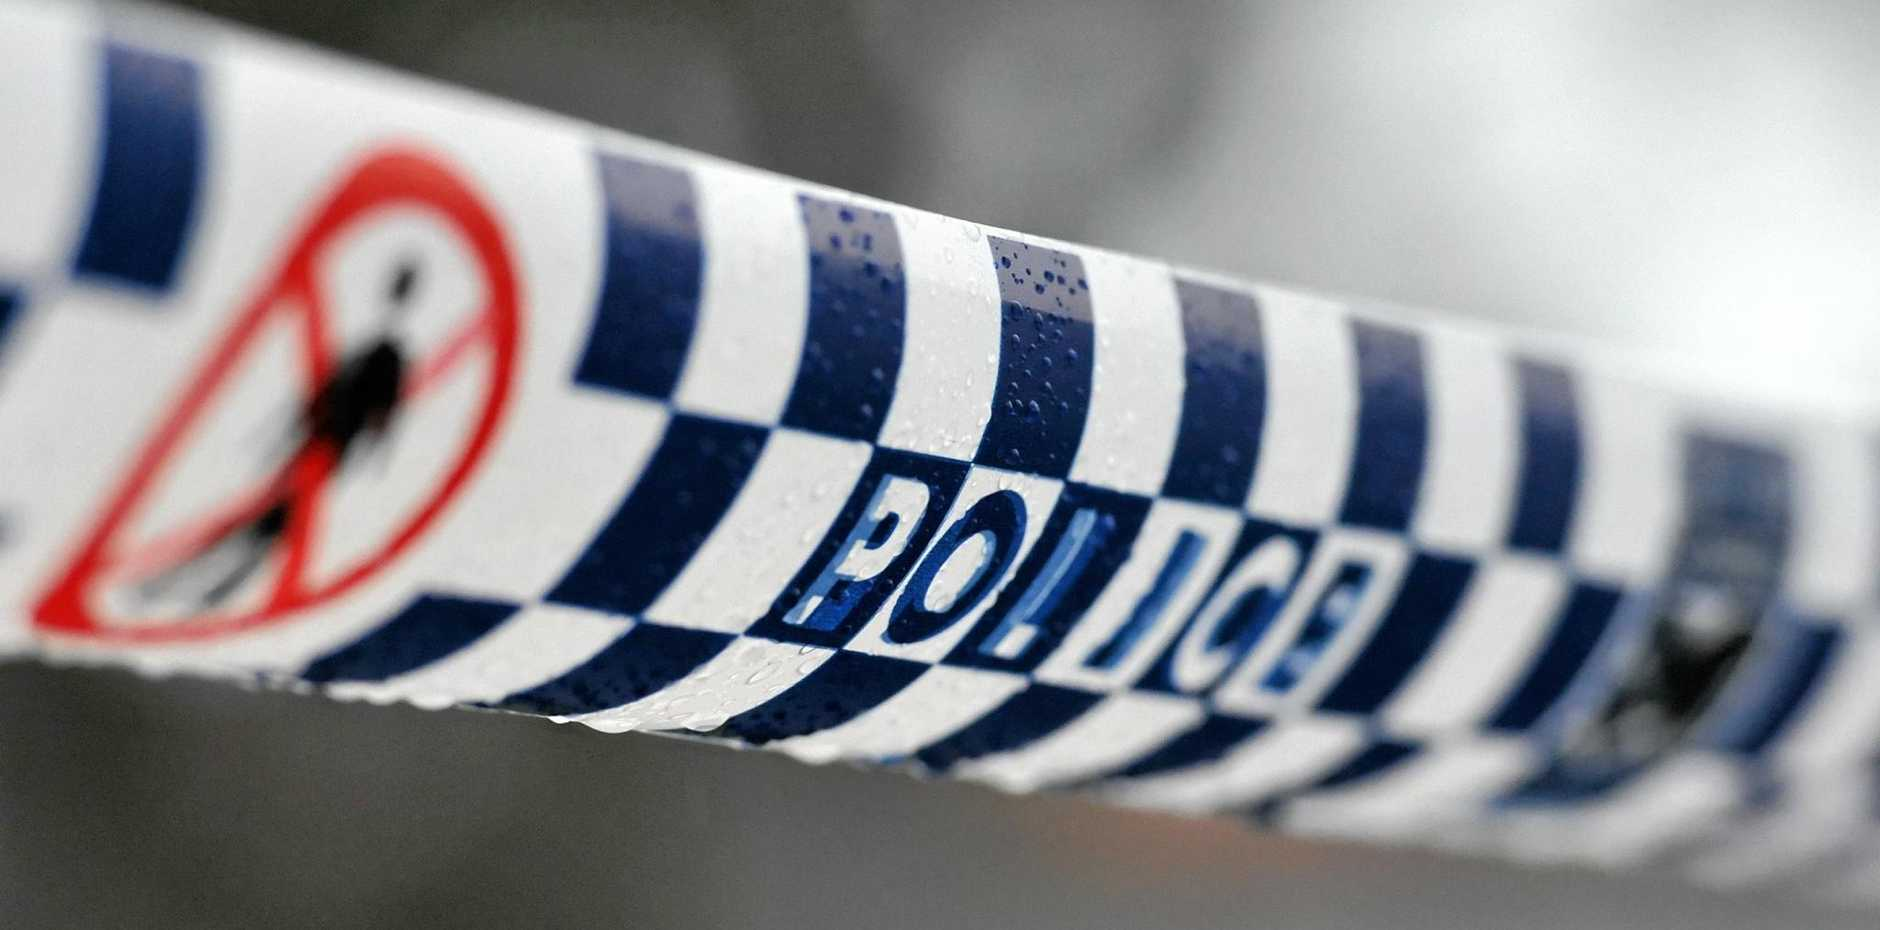 Police tape restricts access to a crime scene north of Sydney, Friday, July 24, 2015. (AAP Image/Joel Carrett) NO ARCHIVING